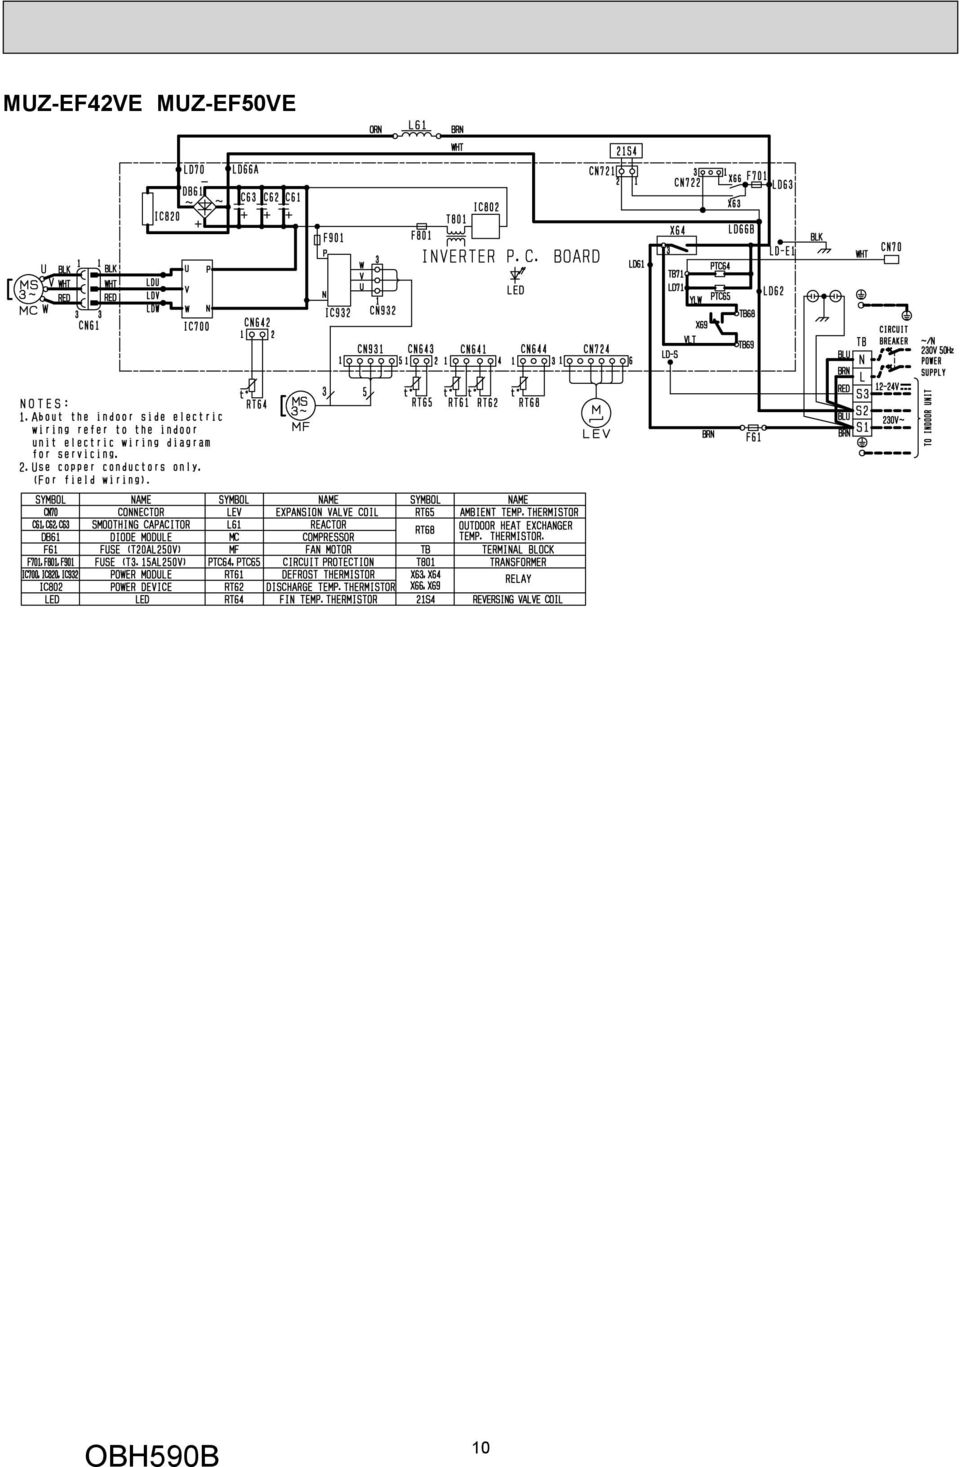 Service Manual Outdoor Unit No Obh590 Revised Edition B Models Motor Thermistor Wiring Diagram 11 7 Refrigerant System Muz Ef25ve Ef25veh Mm Pipe 952 With Heat Insulator 4 Way Valve Flared Connection Stop